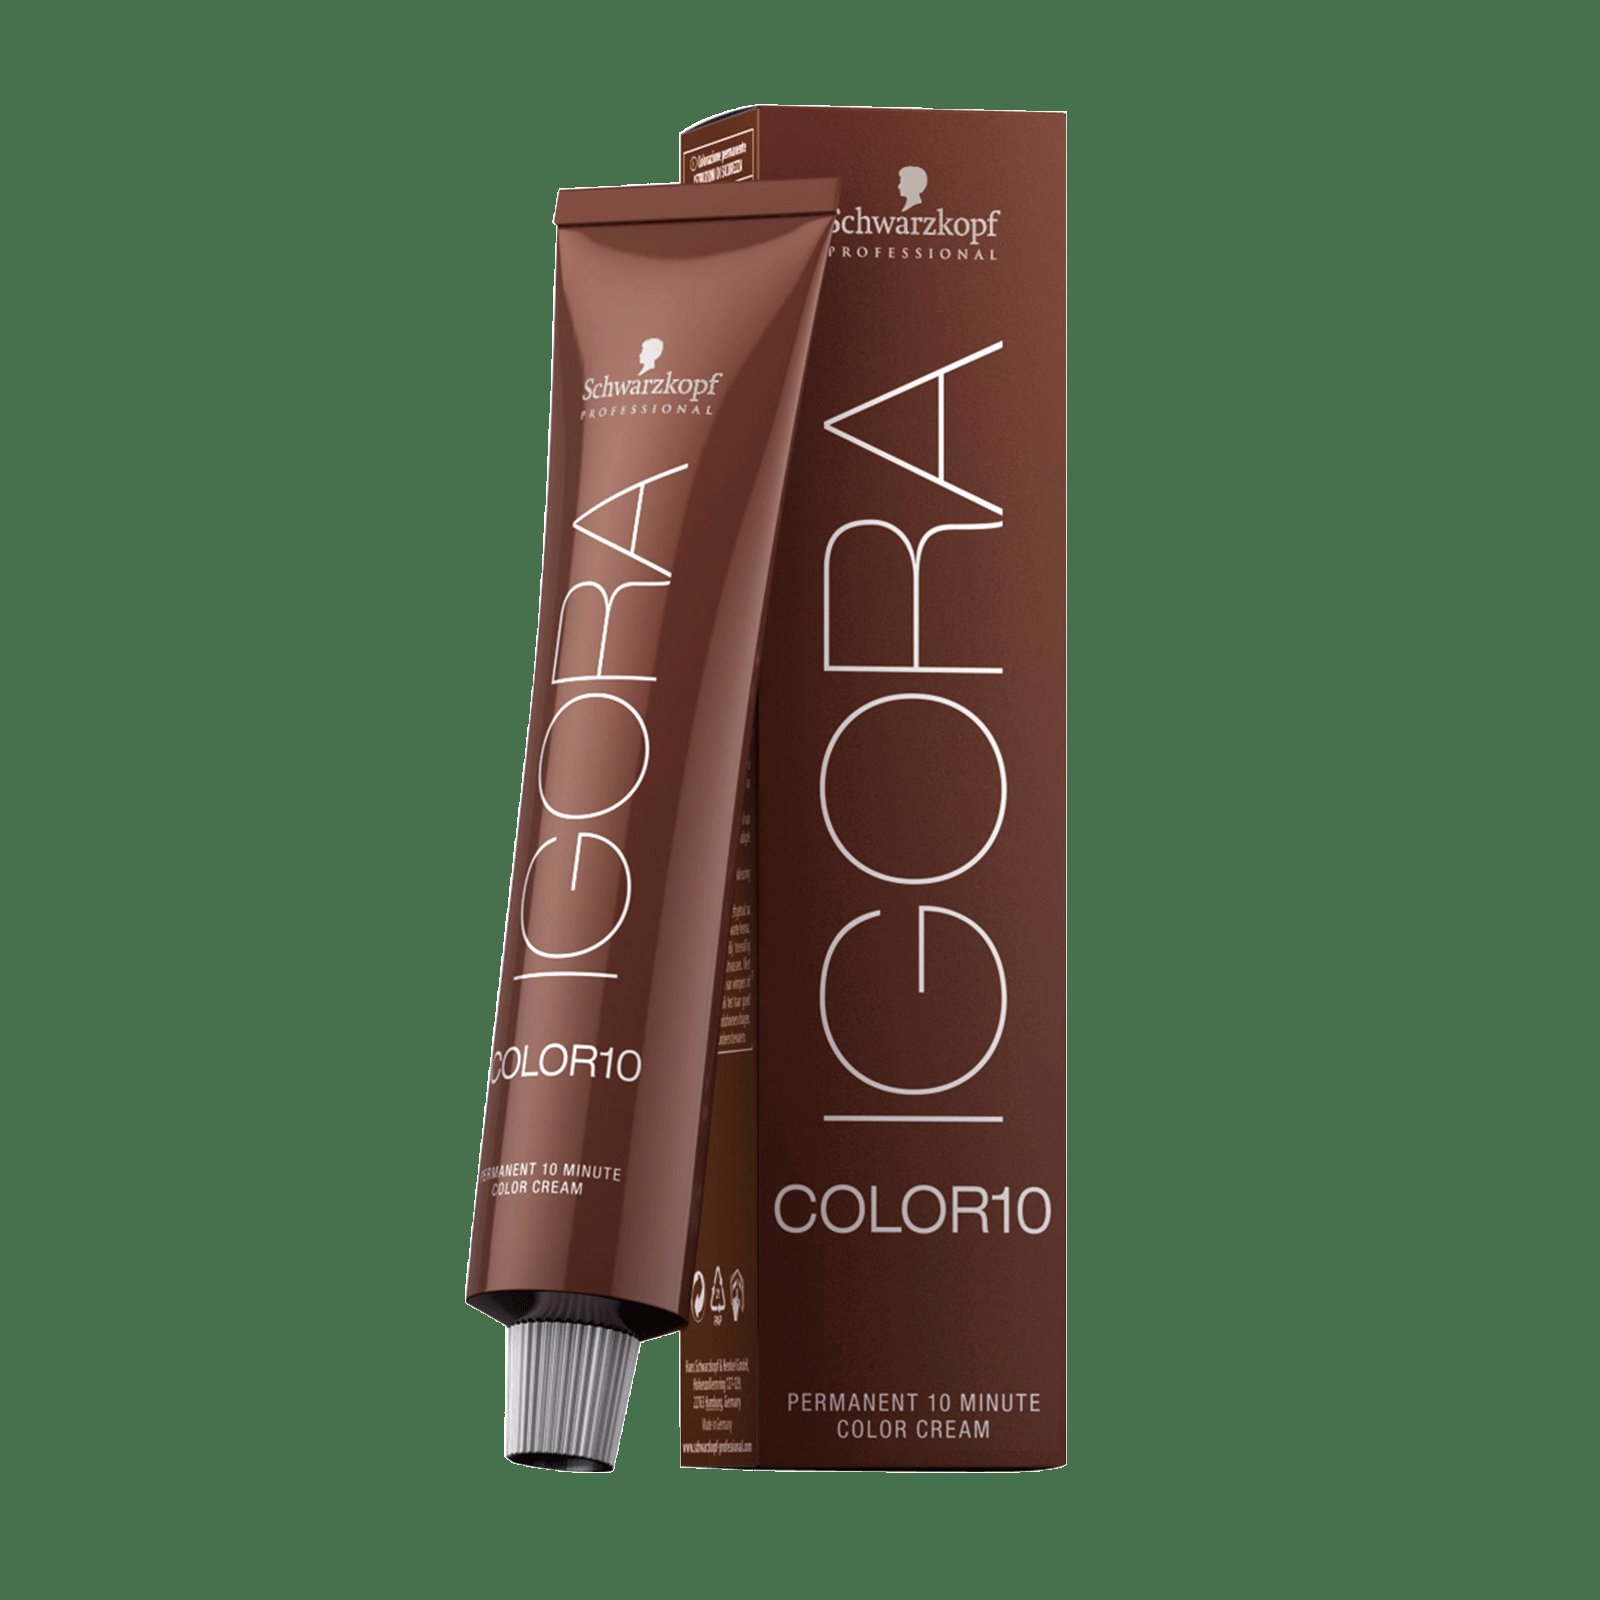 New Igora Color10 Permanent Hair Color Schwarzkopf Ideas With Pictures